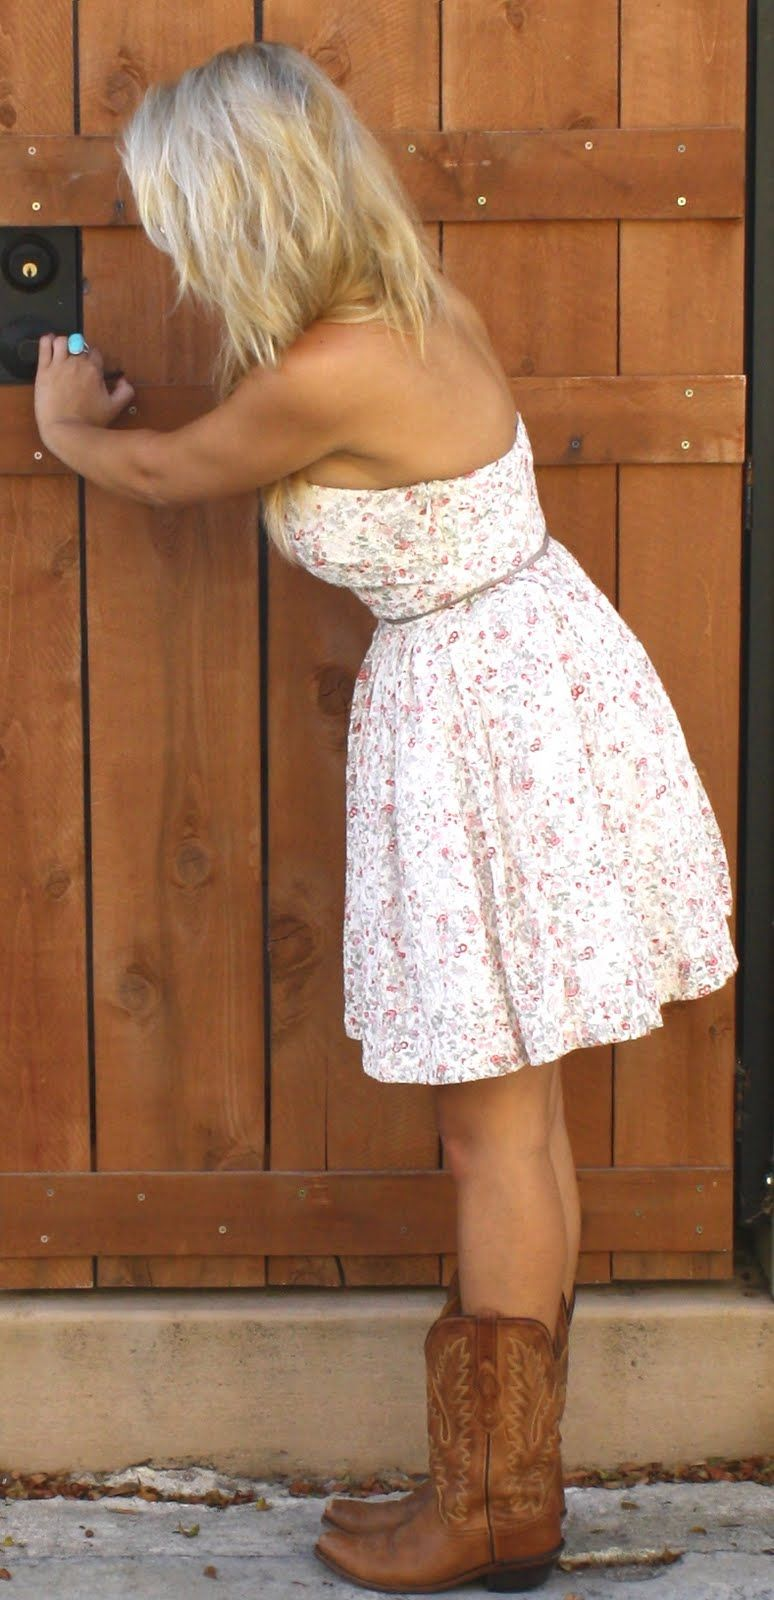 Pin By Hailey Dunford On Fashionista Dresses With Cowboy Boots Fashion Dresses [ 1600 x 774 Pixel ]